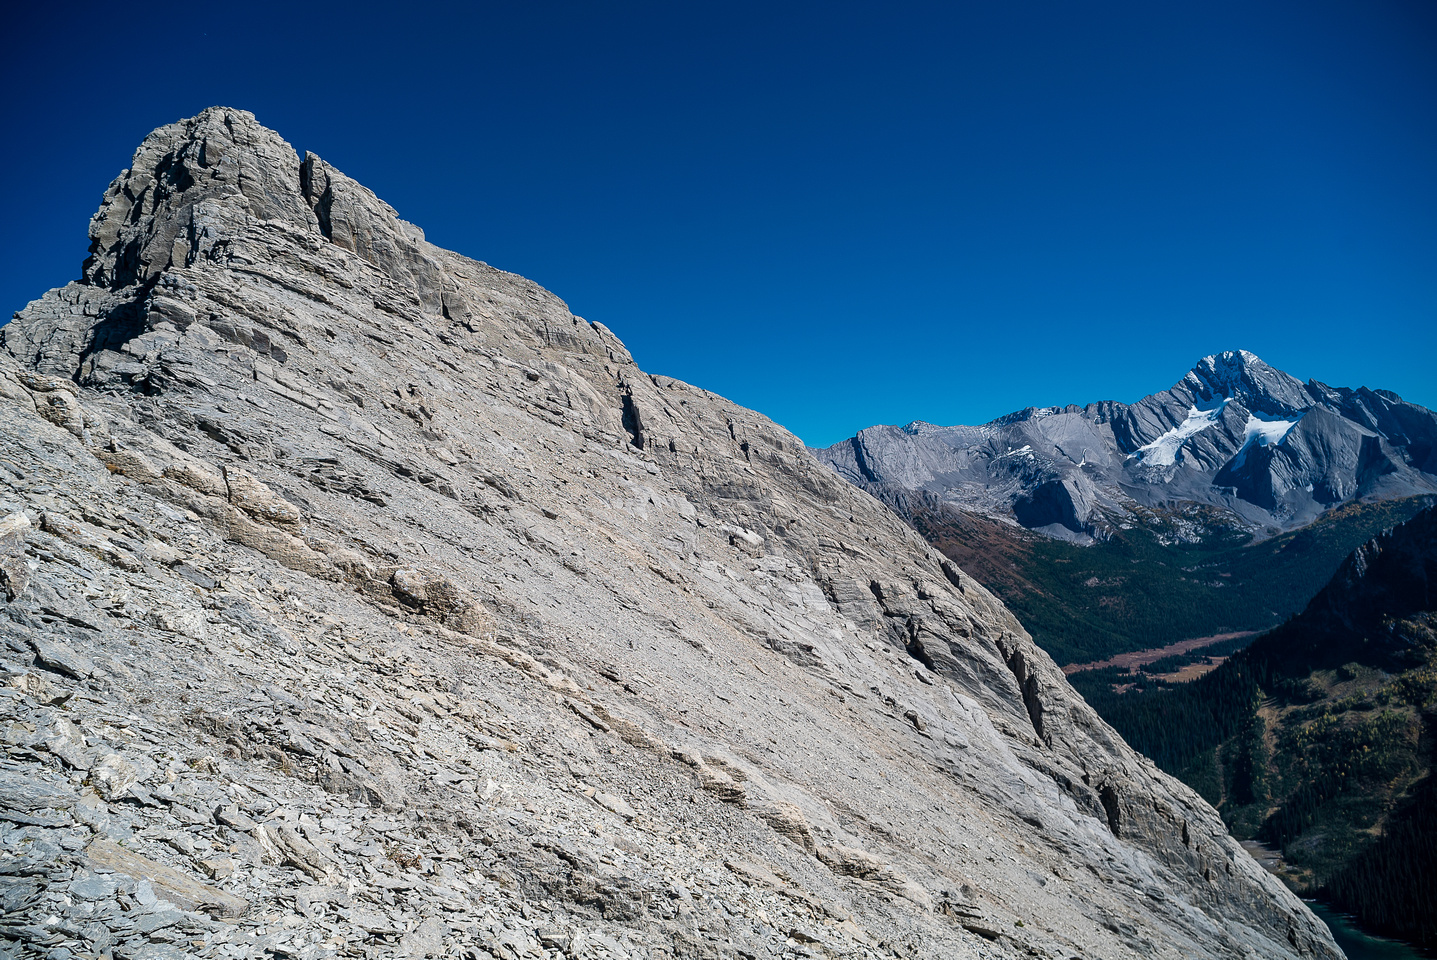 I thought I could possibly descend a hundred meters and go up one of the obvious cracks in the cliff bands guarding a route up the south slopes to the summit.